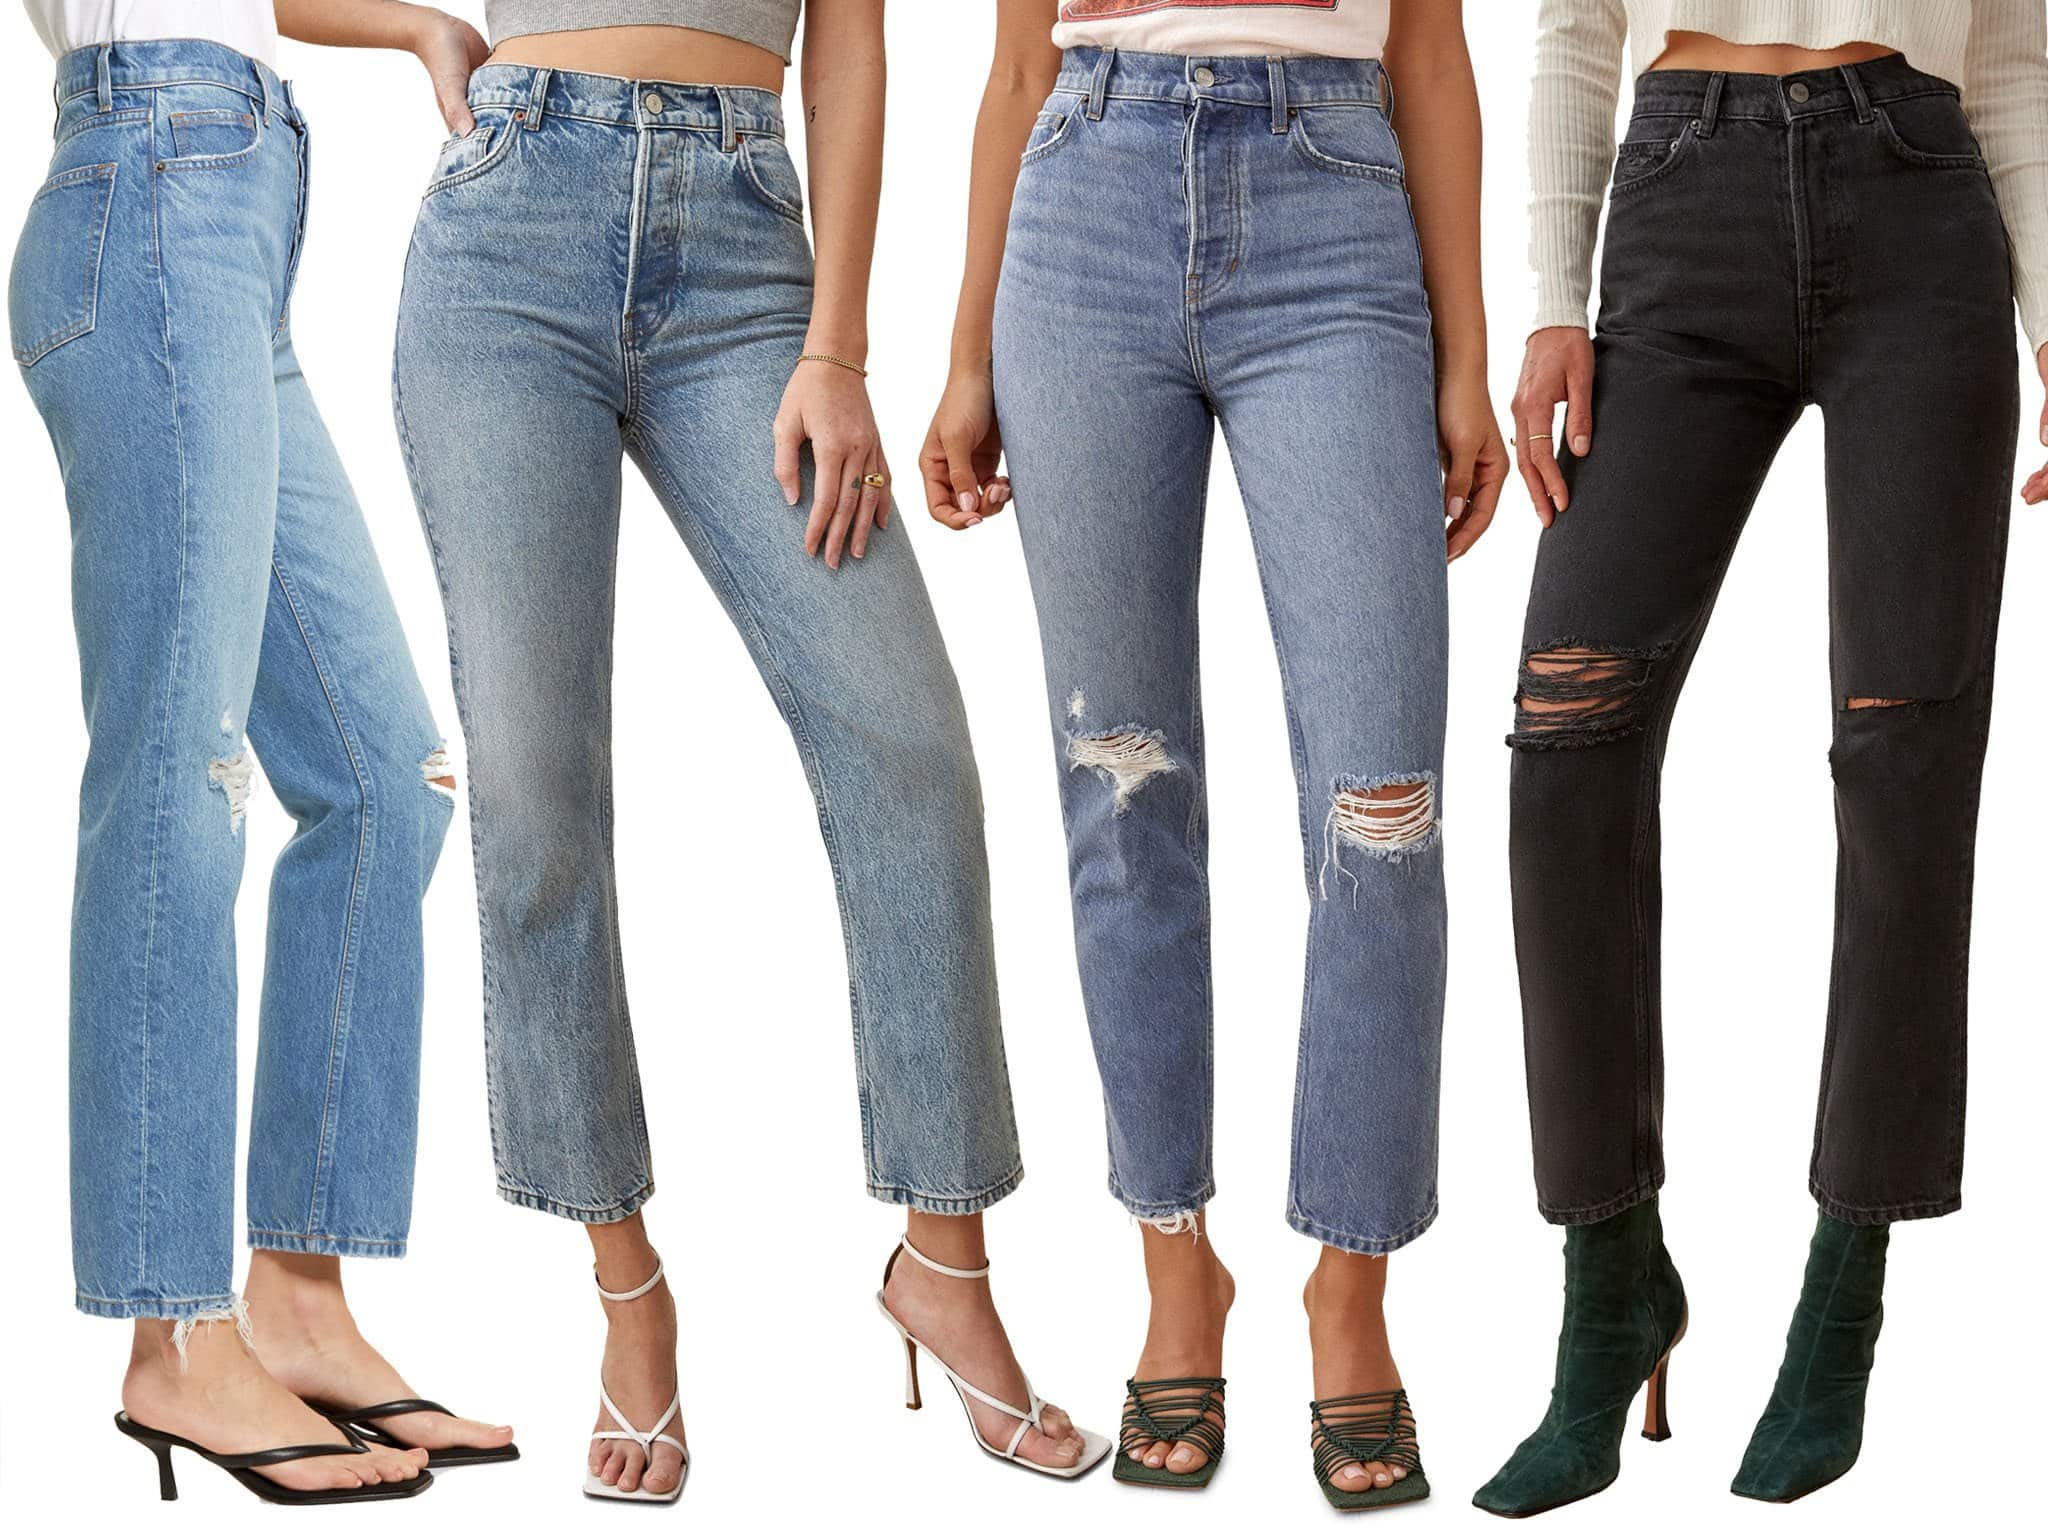 The Reformation Cynthia is a non-stretch fitted jeans with a high waist and a relaxed straight leg